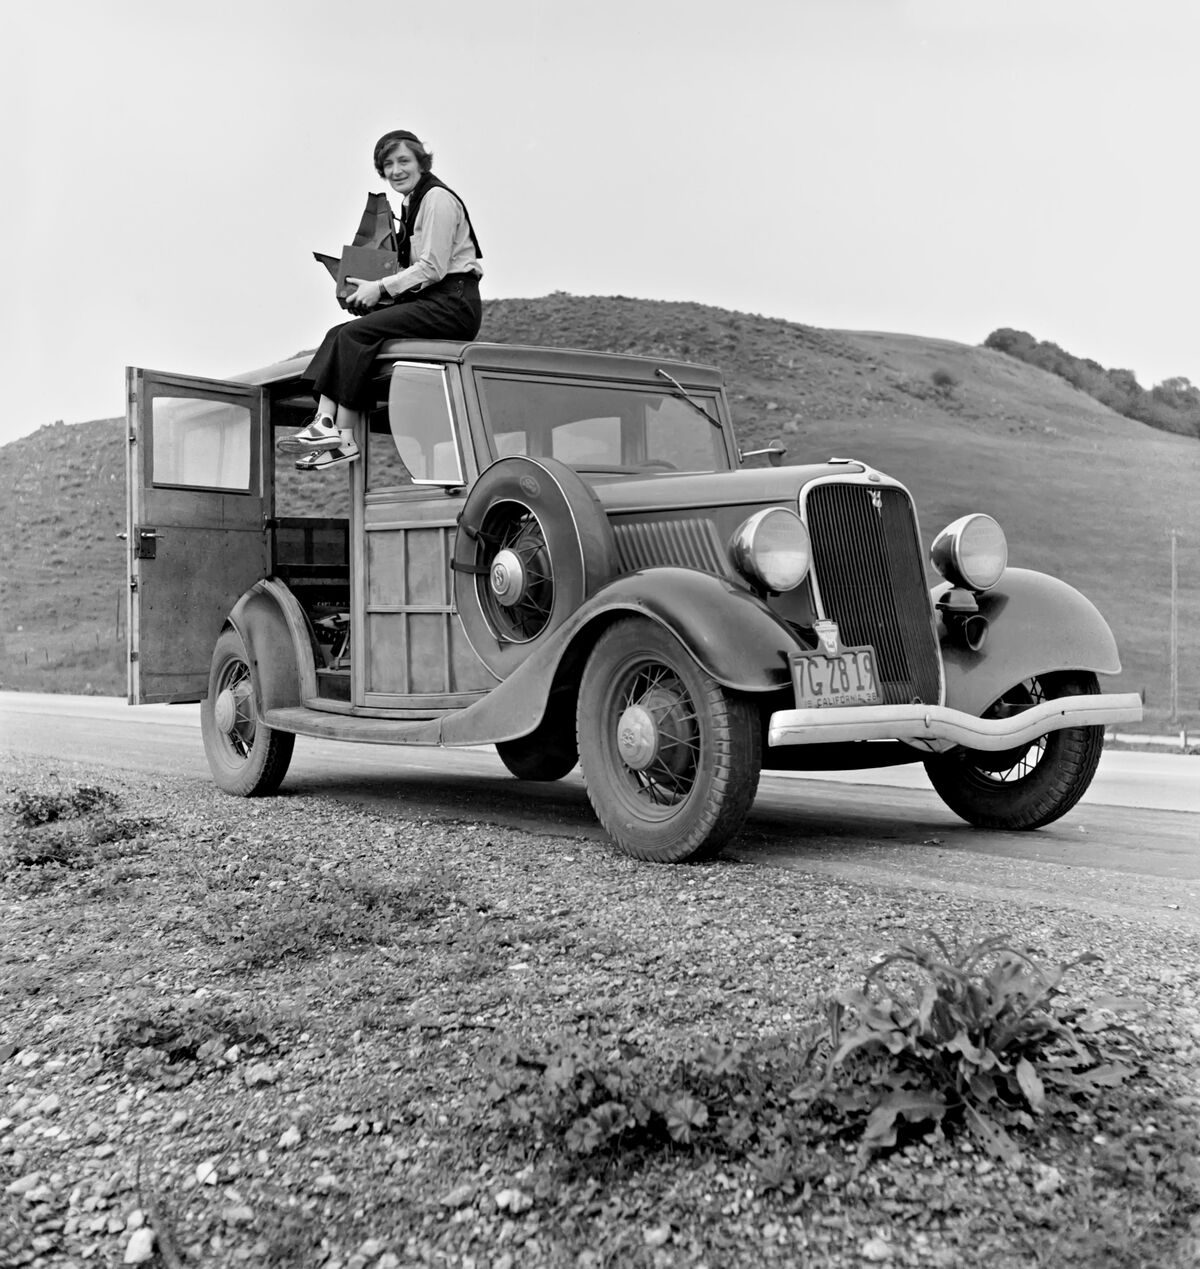 Photo of Dorothea Lange via Wikimedia Commons.